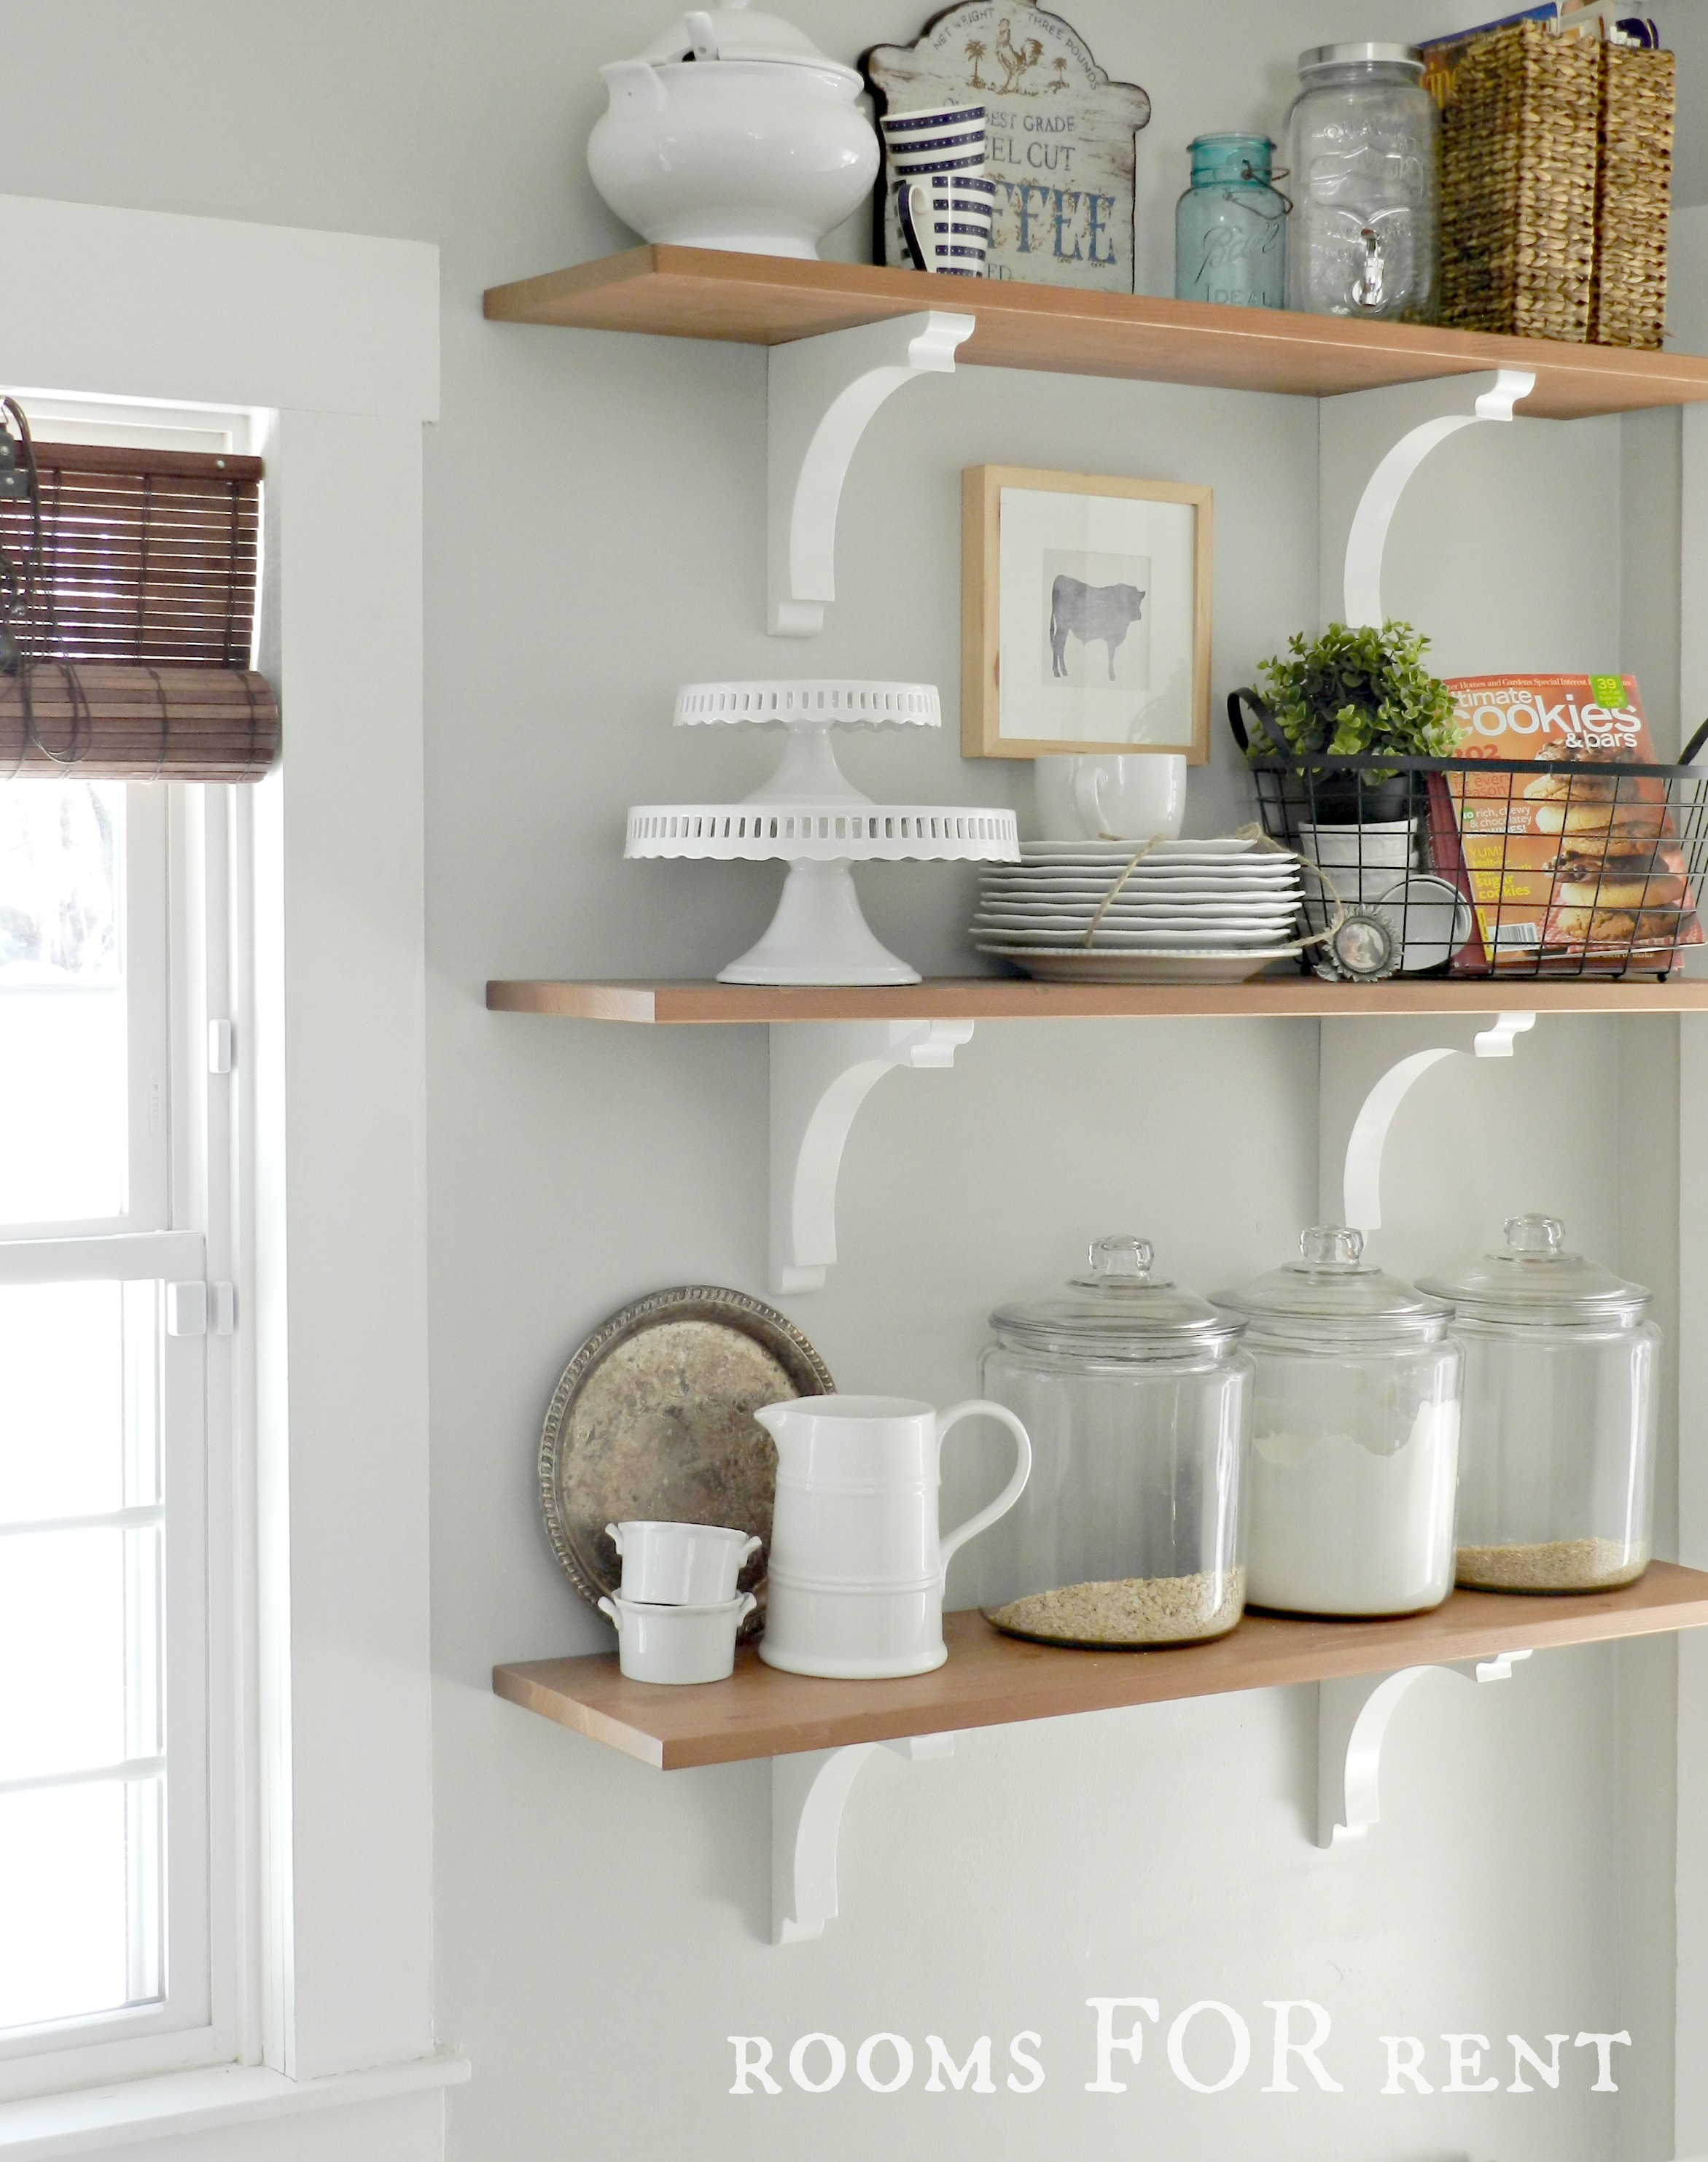 Kitchen Shelf Decorating How To Update Your Kitchen Rooms For Rent Blog